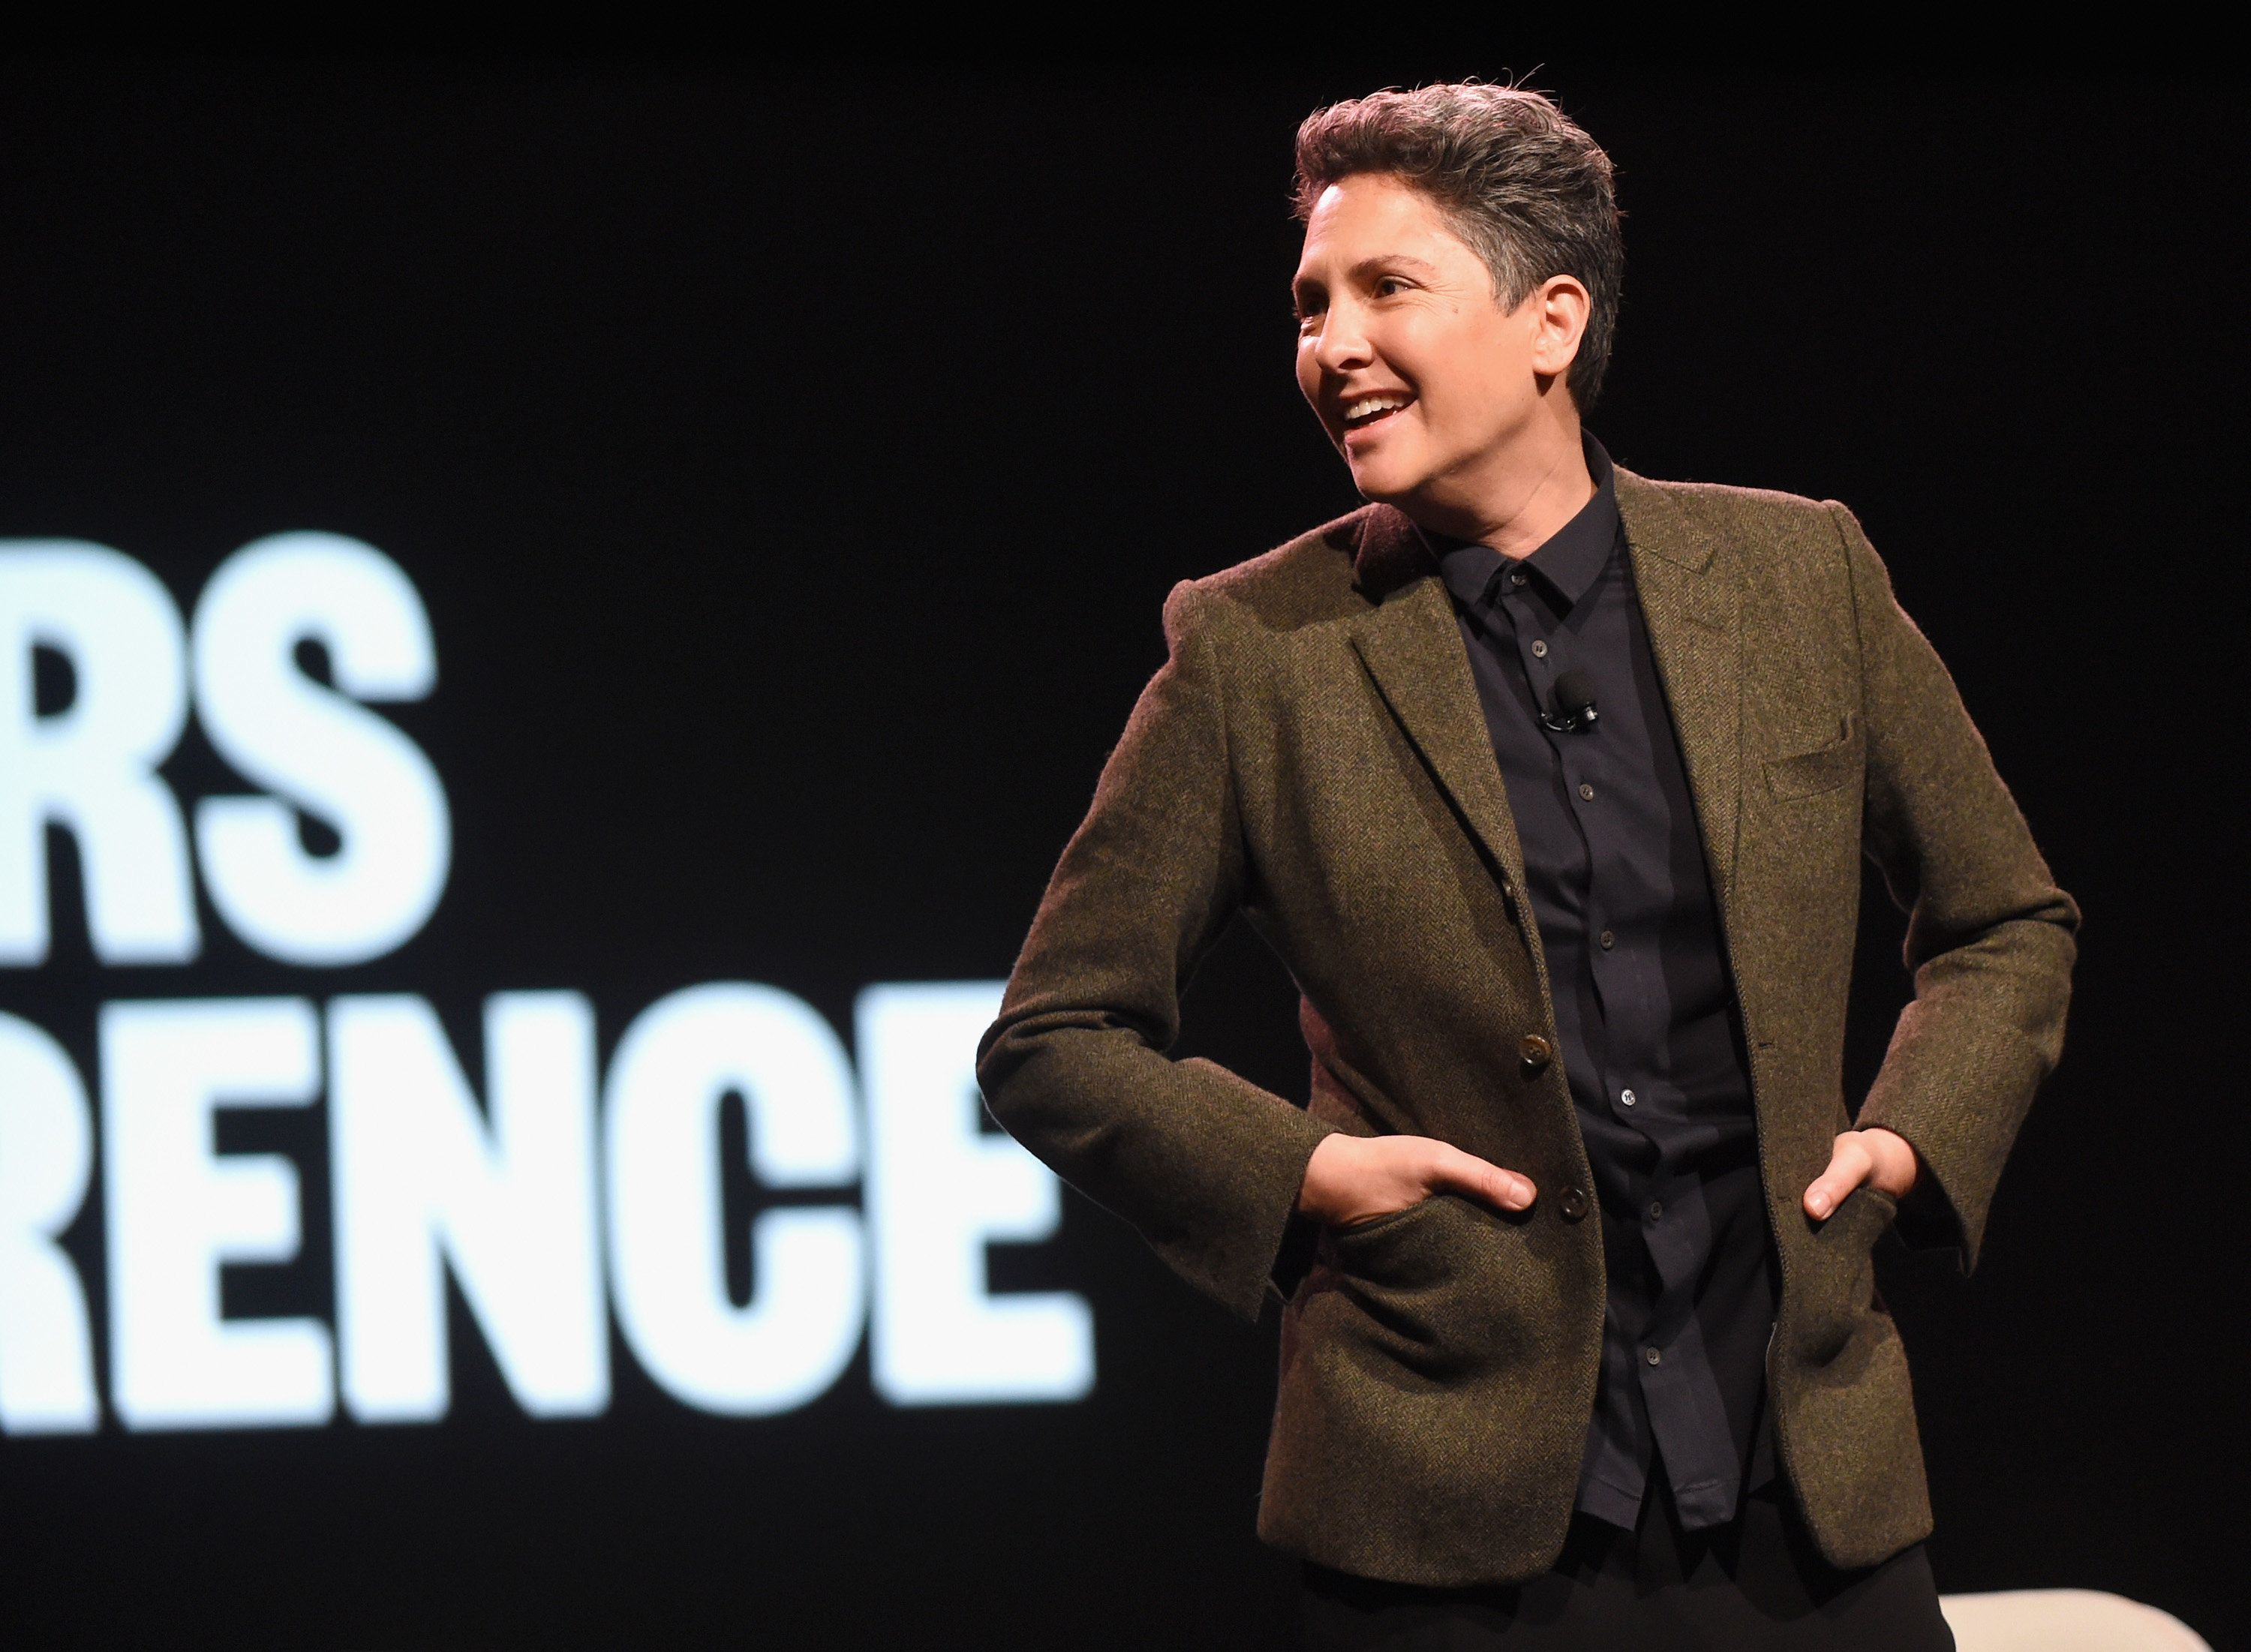 RANCHO PALOS VERDES, CA - FEBRUARY 07:  Writer/producer Jill Soloway speaks onstage during The 2017 MAKERS Conference Day 2 at Terranea Resort on February 7, 2017 in Rancho Palos Verdes, California.  (Photo by Emma McIntyre/Getty Images for AOL)